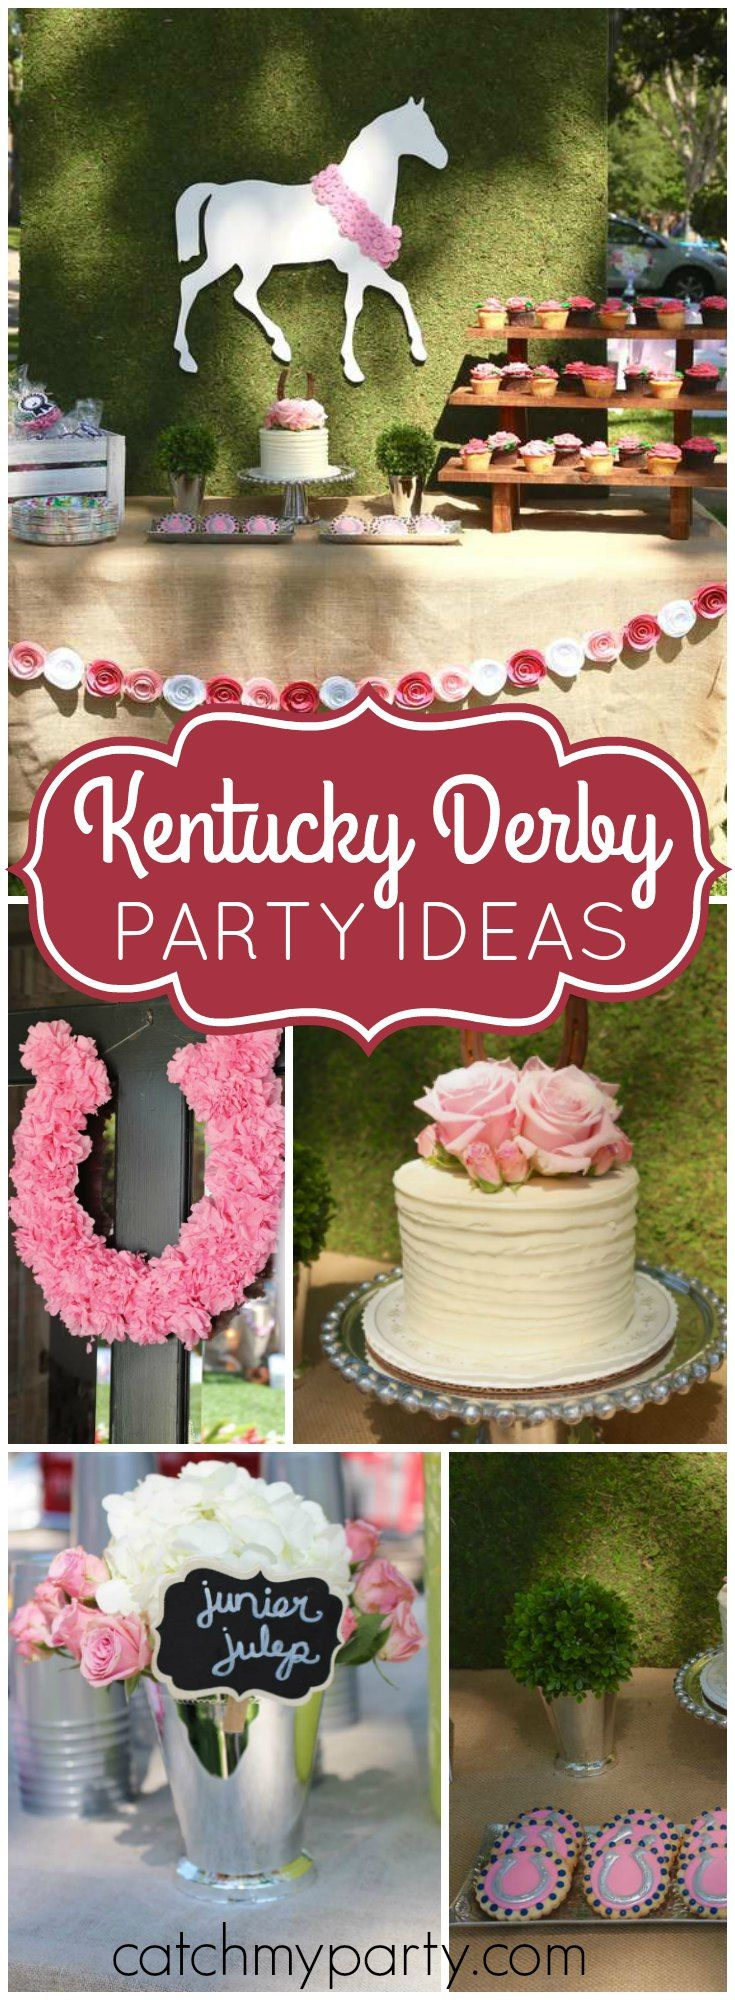 Celebrate a 2nd birthday with the Kentucky Derby at this party! See more party ideas at Catchmyparty.com!